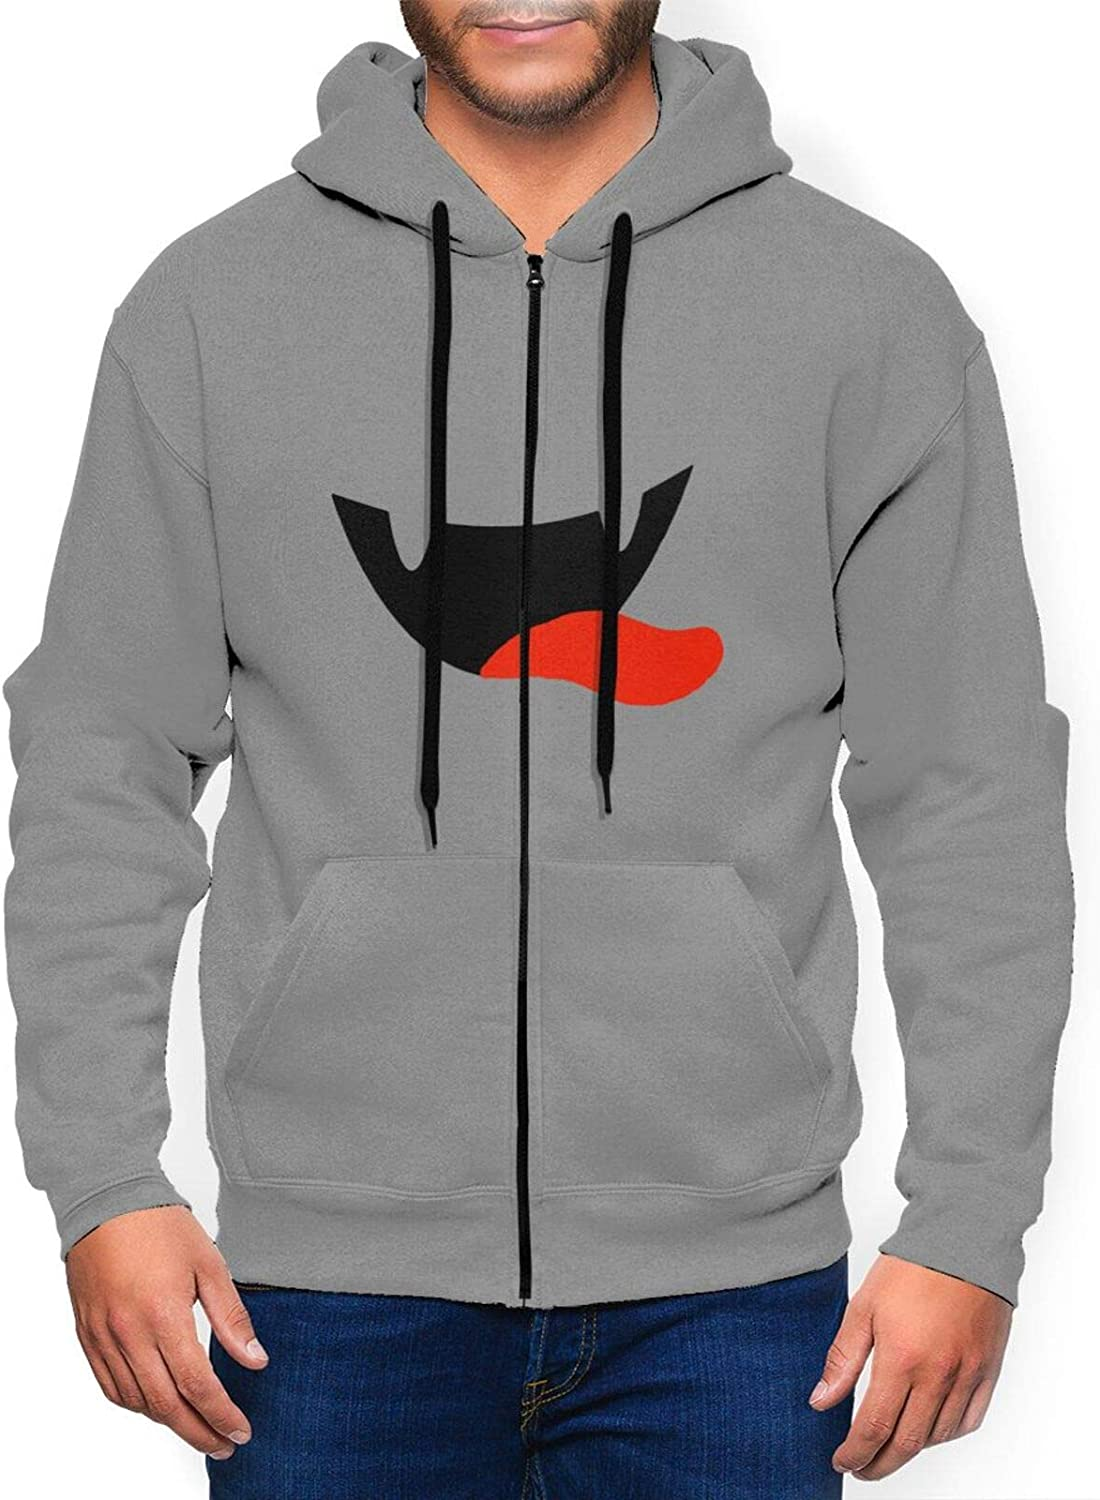 Mouth wholesale Series Man's Zip Hooded Special price for a limited time Sweater Sweatshirt